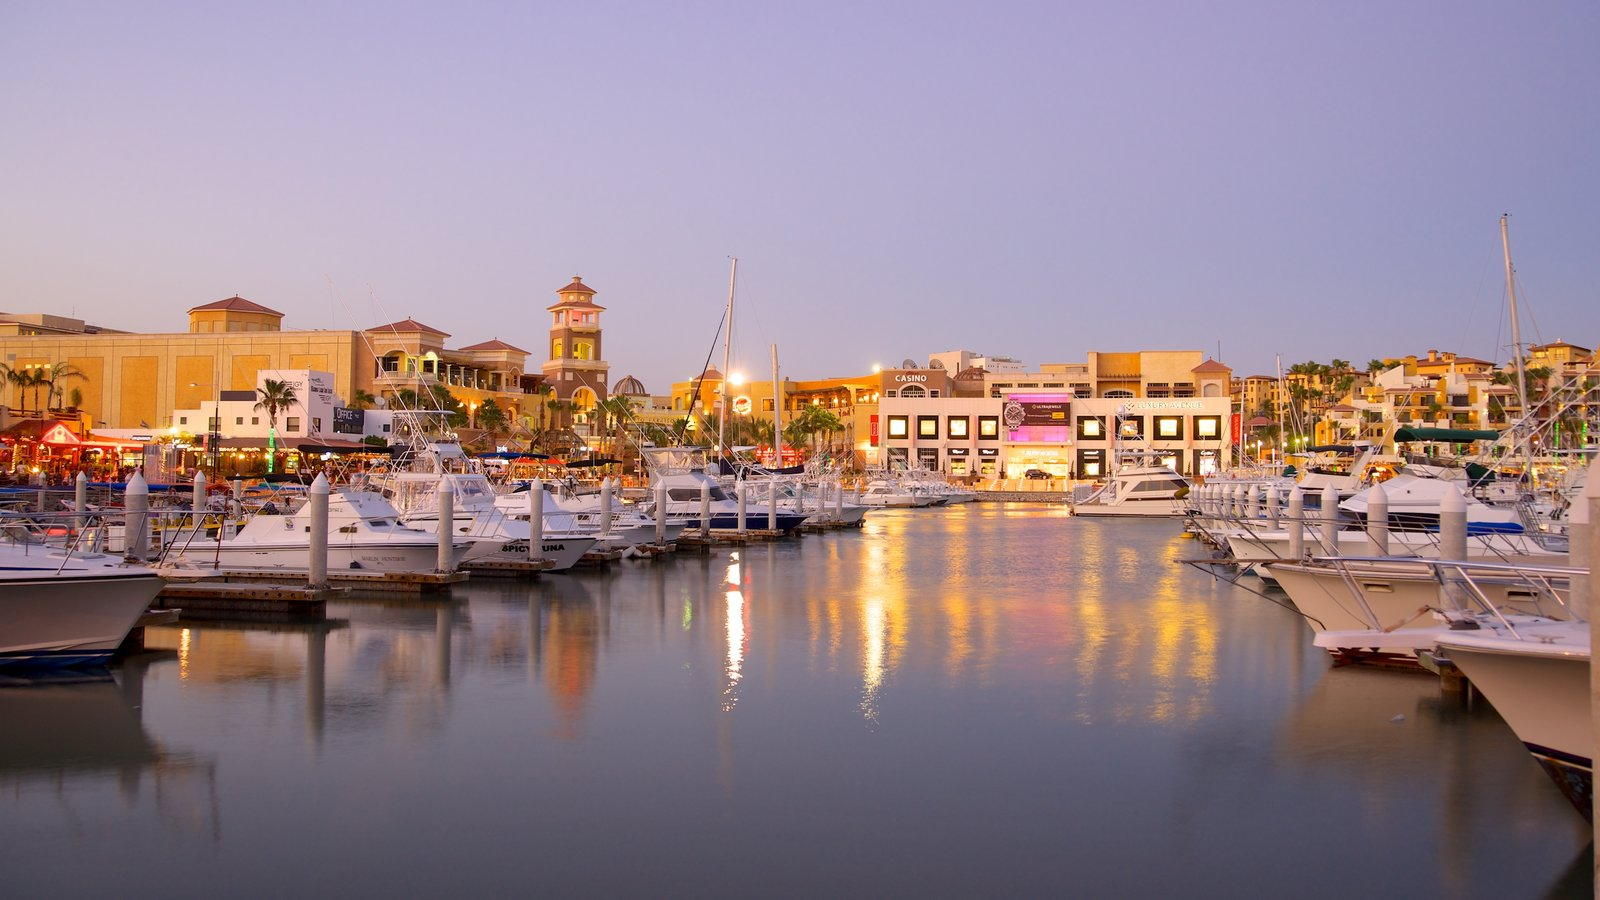 Marina Cabo San Lucas which includes a marina and a coastal town